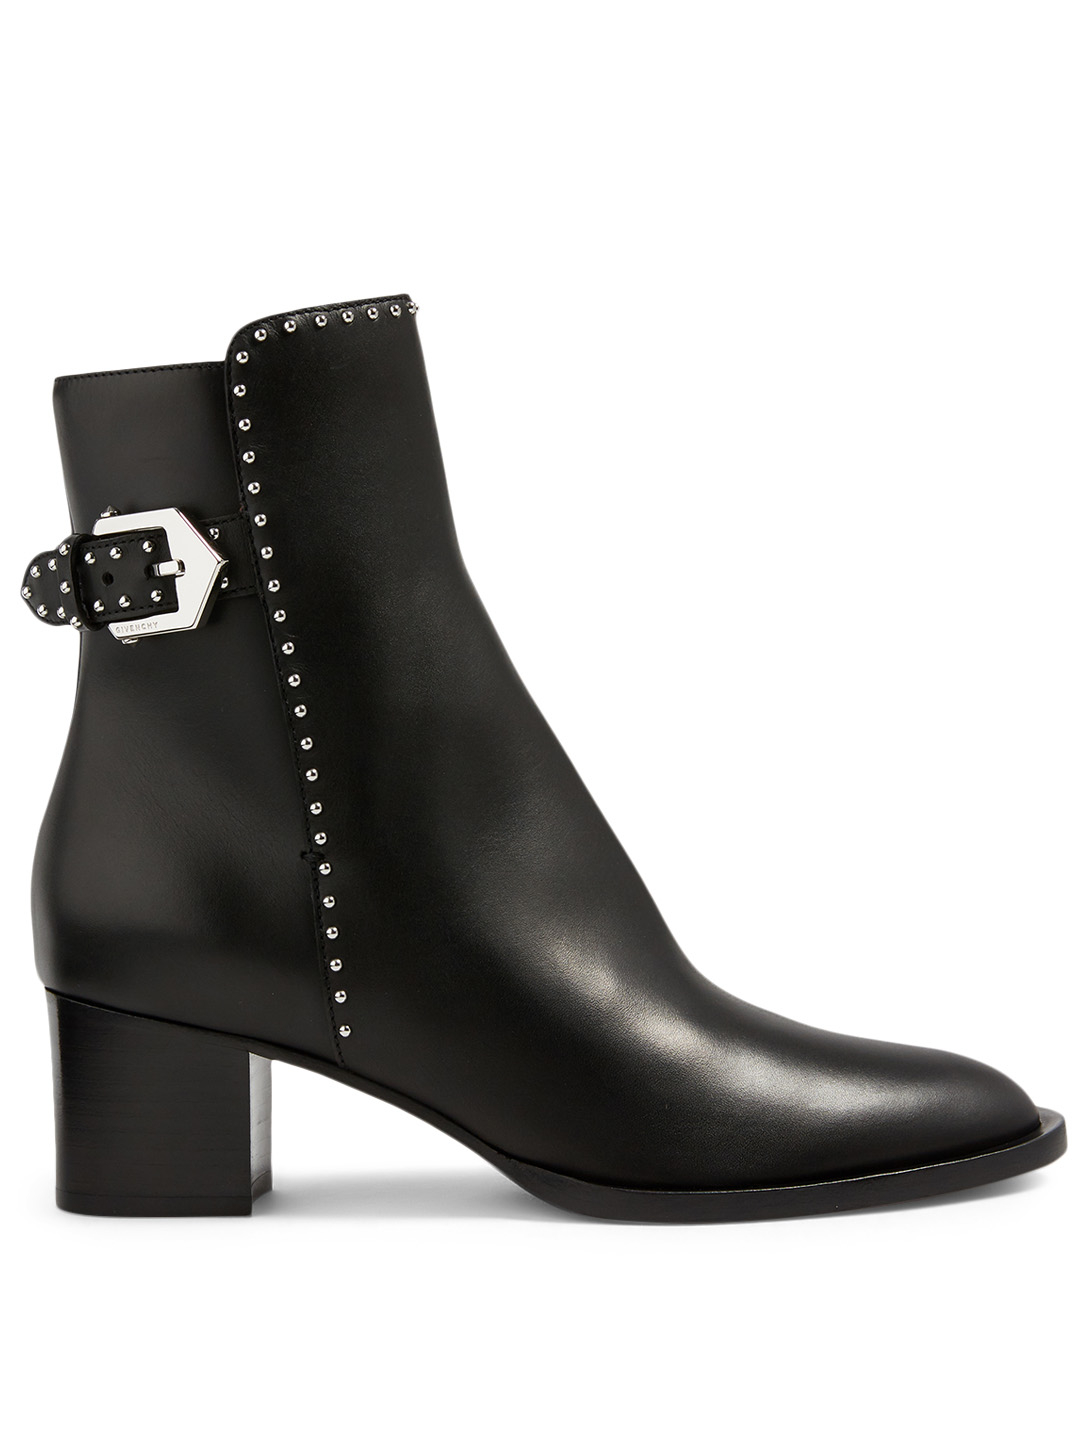 GIVENCHY Elegant Leather Heeled Ankle Boots With Studs Women's Black